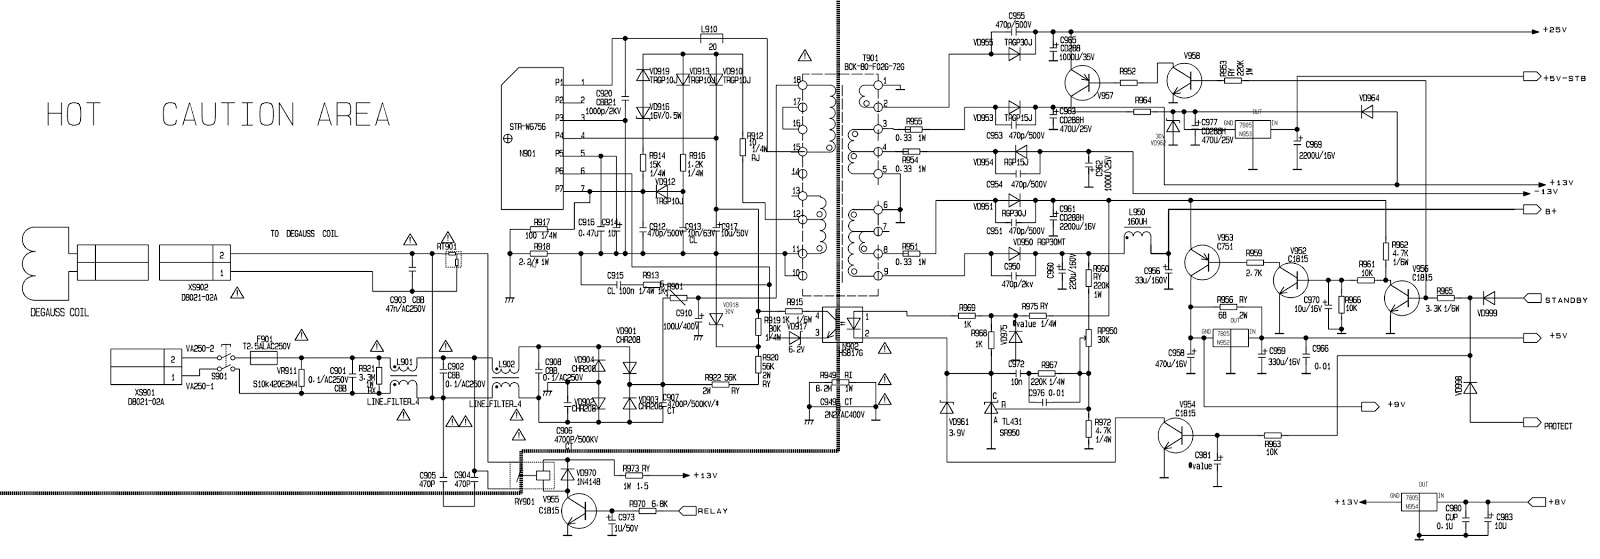 Welcome Strw 6756 Tv Power Supply Smps Circuit Diagram And Or Schematic